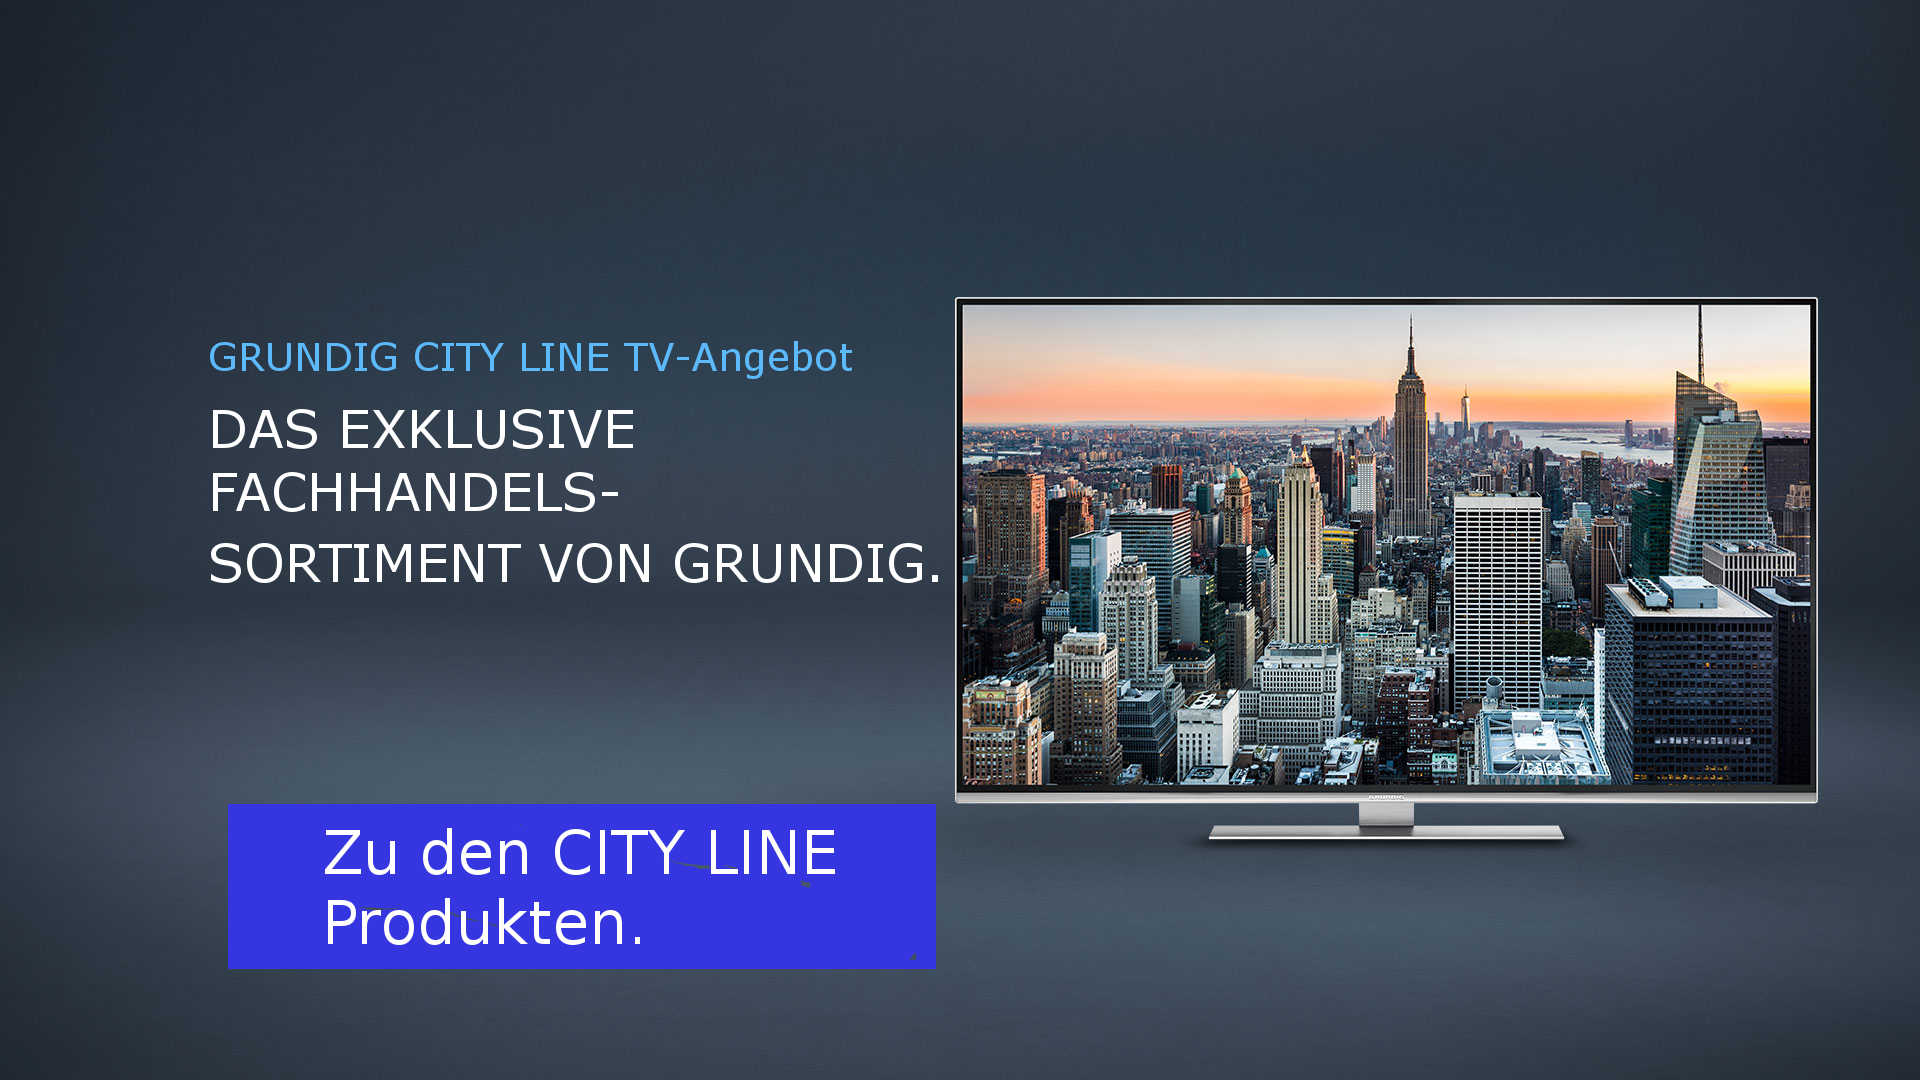 Angebote TV-City-Line-Sortiment